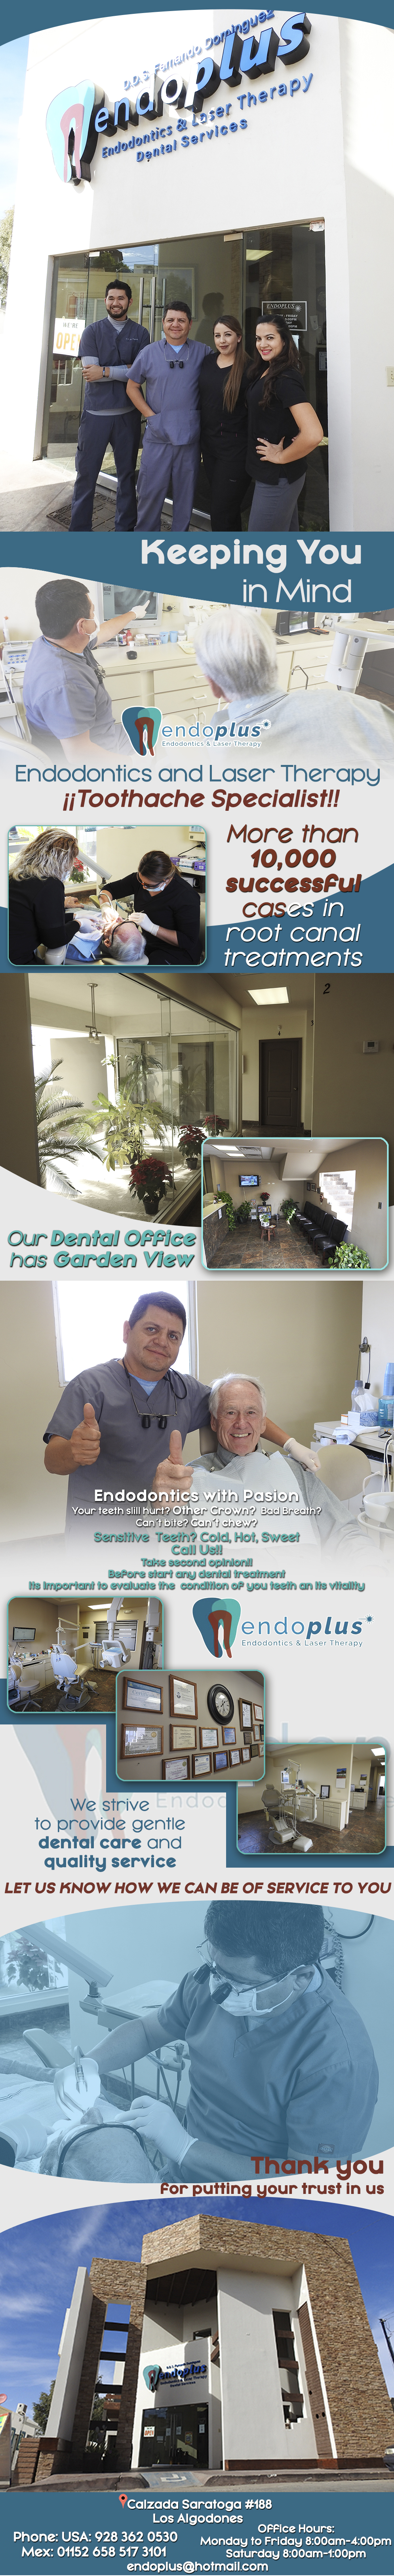 """Endoplus Fernando Dominguez DDS in Algodones  in Algodones  Endodontic Specialist. More than 10,000 successful cases in root canal treatments.  Keeping you in Mind...  """"Keeping You in Mind"""" Endodontics and Laser Therapy ¡¡Toothache Specialist!! Although we understand coming to the dentist may not be the most pleasant place, we´ll make it our number one priority  to help you have the best experience. We strive to provide gentle dental care and quality service. Let us know how we can be of service to you.  Thank you for putting your trust in us.                      endodoncia endodontics endo plus endo-plus dr dr. dominguez  fernando dominguez d.d.s. dds.  endodoncista Endodontist root canal endodonics and laser therapy root canal treatments  dentist dentistry  dental  quality service  smile treatments"""